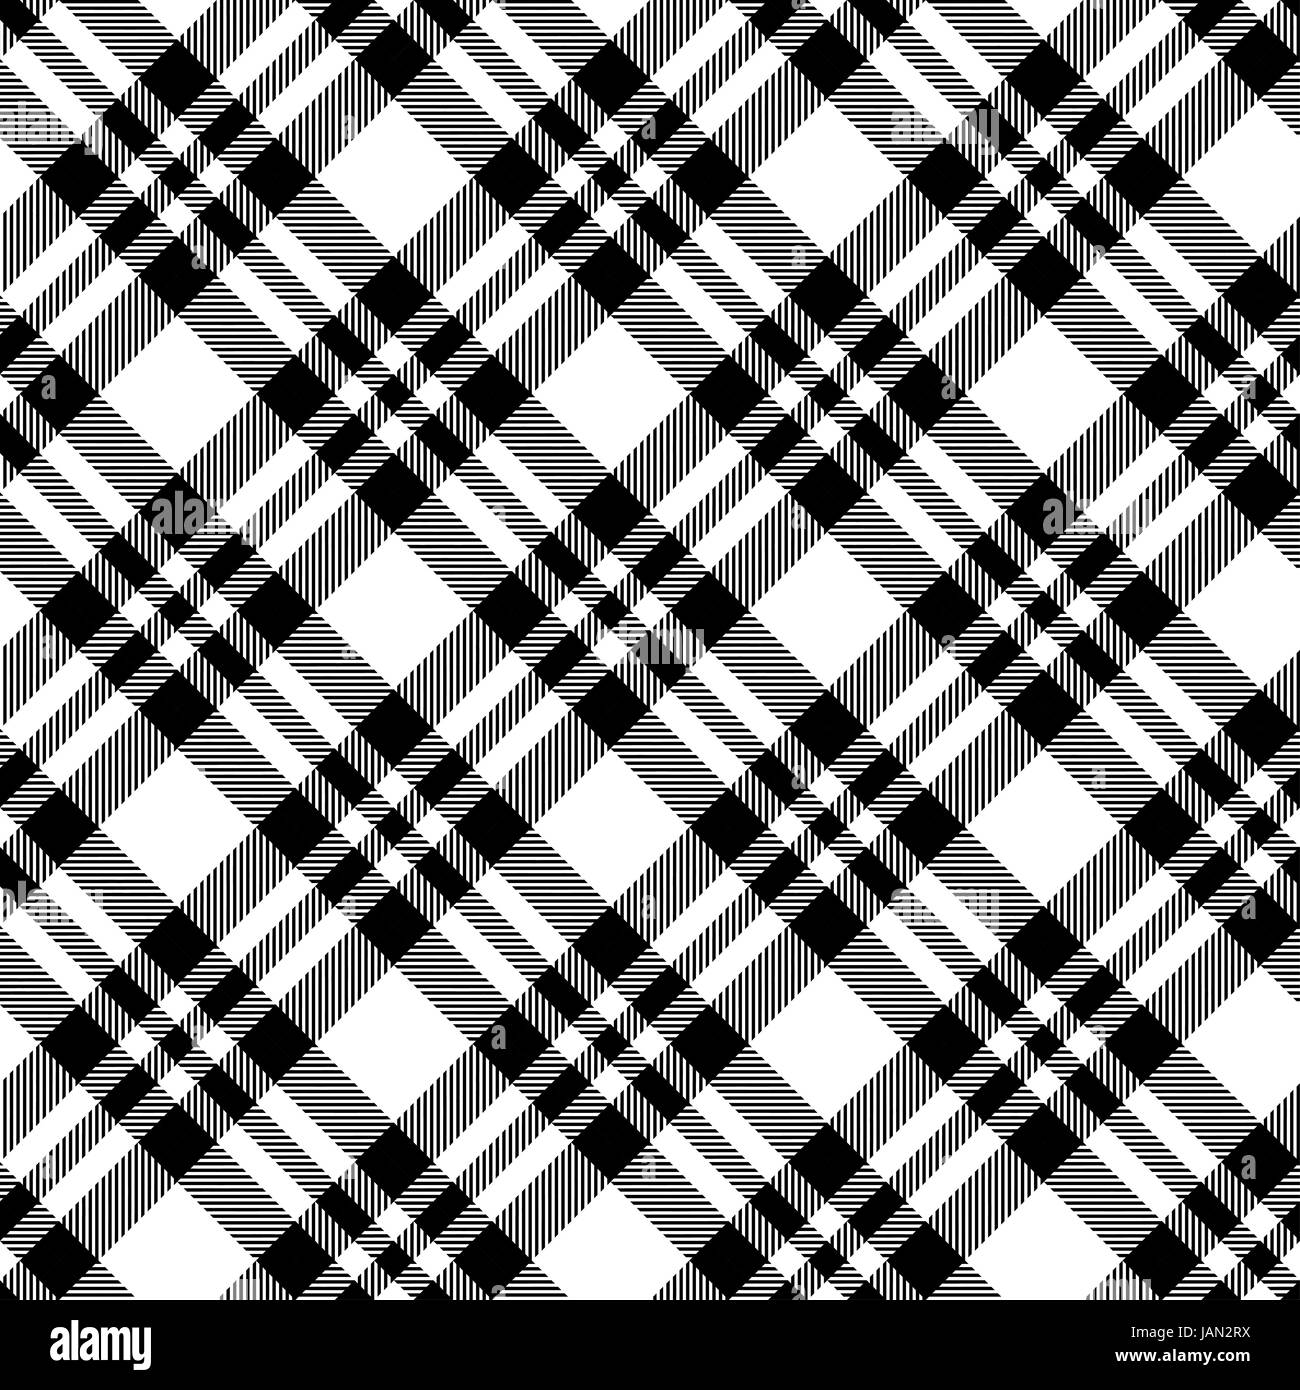 checked tablecloths black pattern - endless - Stock Image